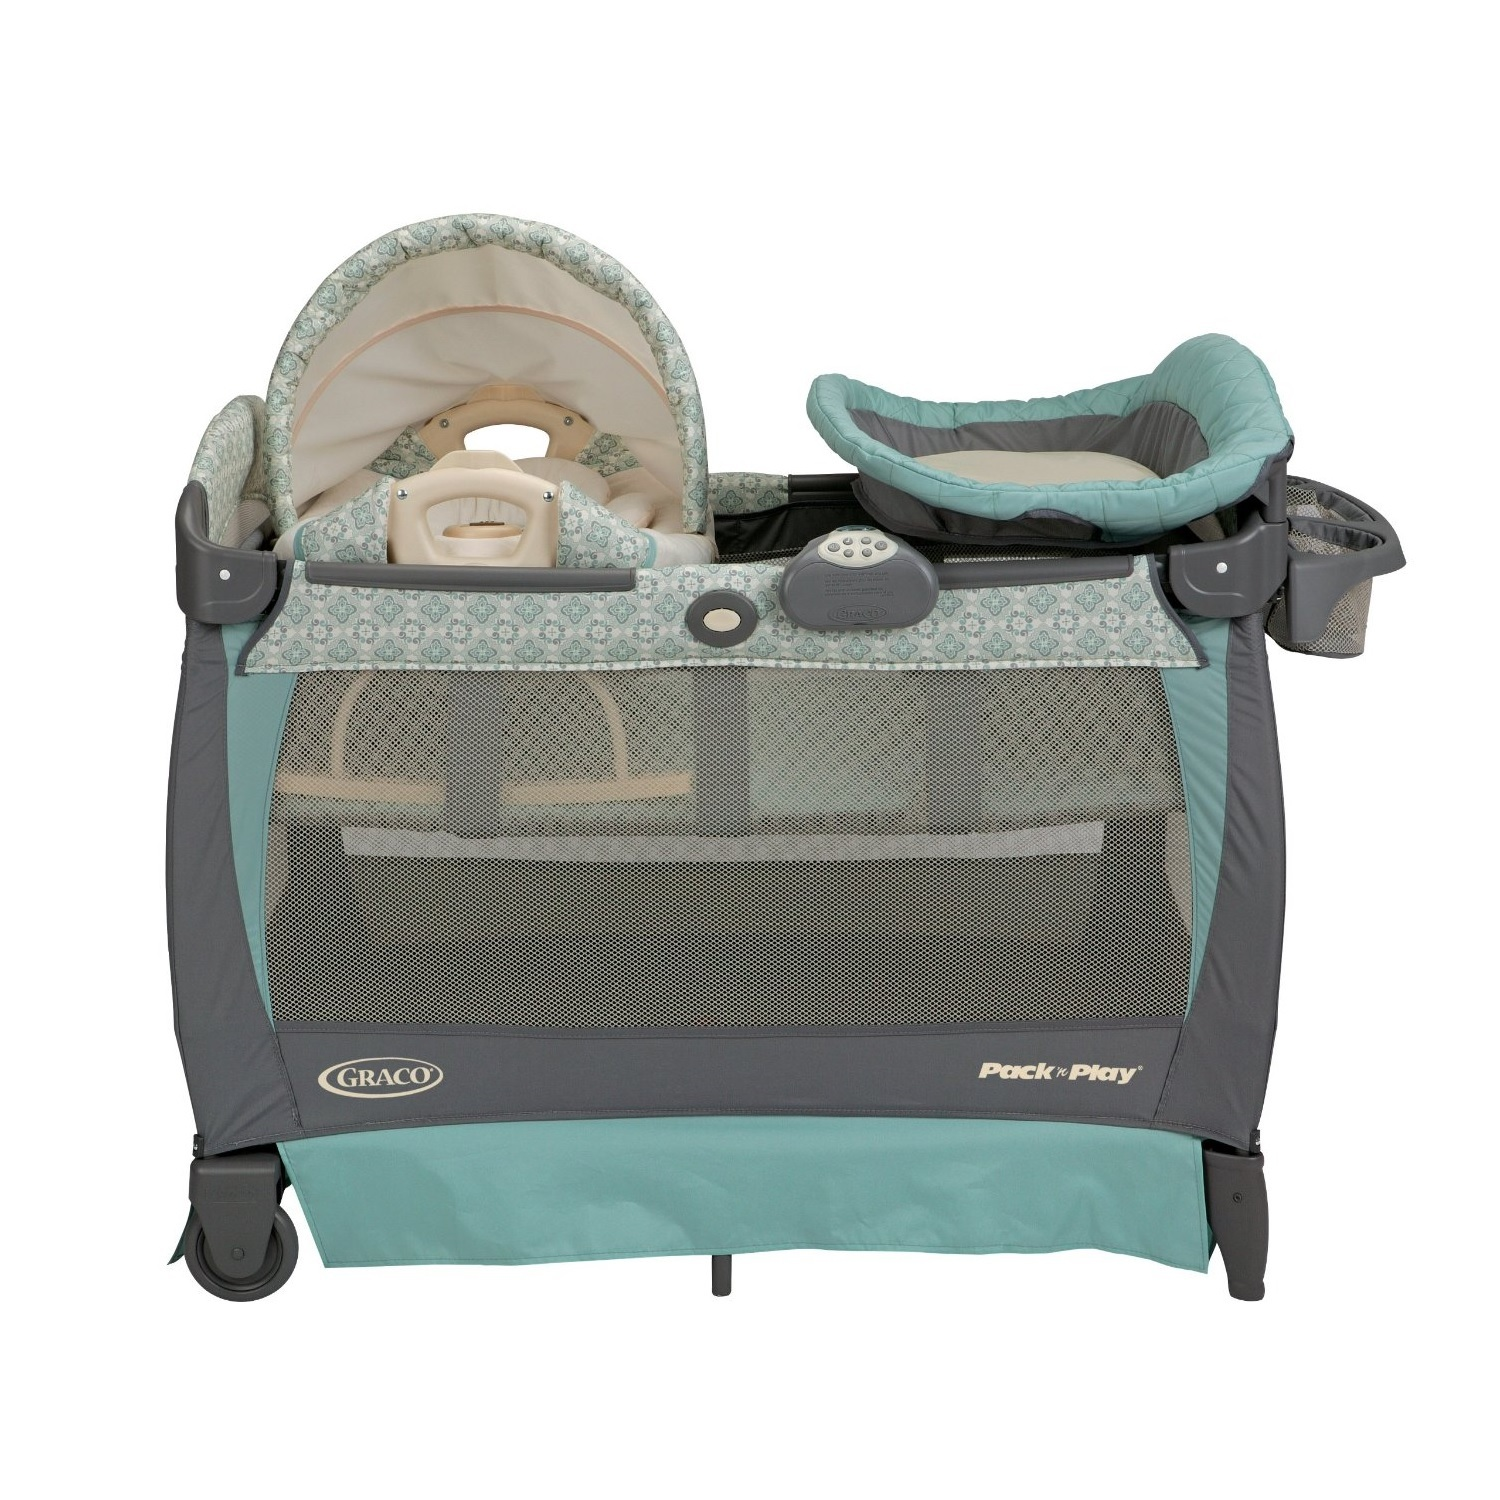 Sears has baby gear, ranging from strollers to car seats. Get all the baby equipment you need to keep your infant comfortable and supported.